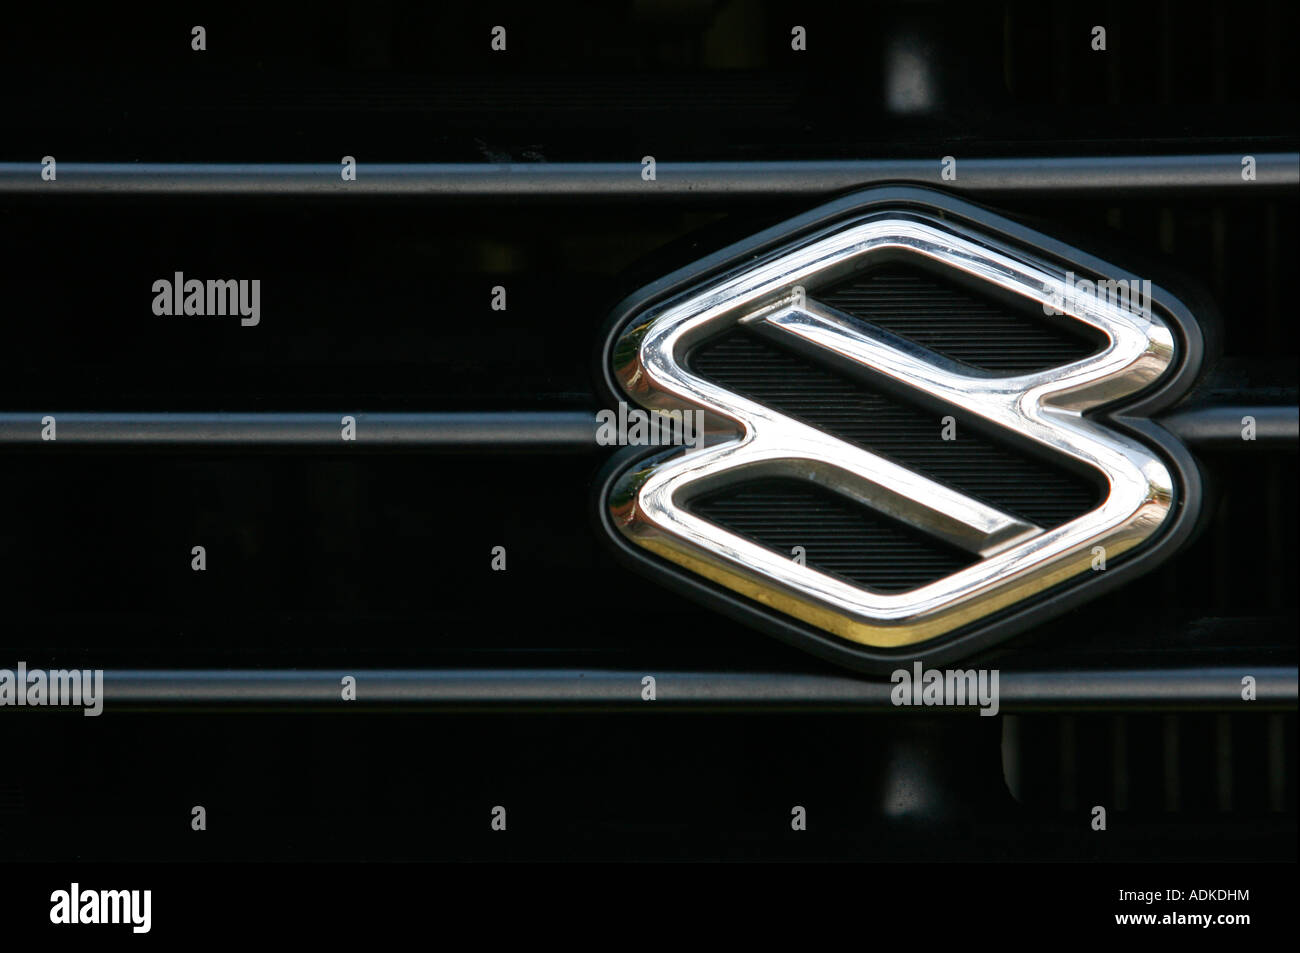 Suzuki Car Stock Photos Suzuki Car Stock Images Alamy